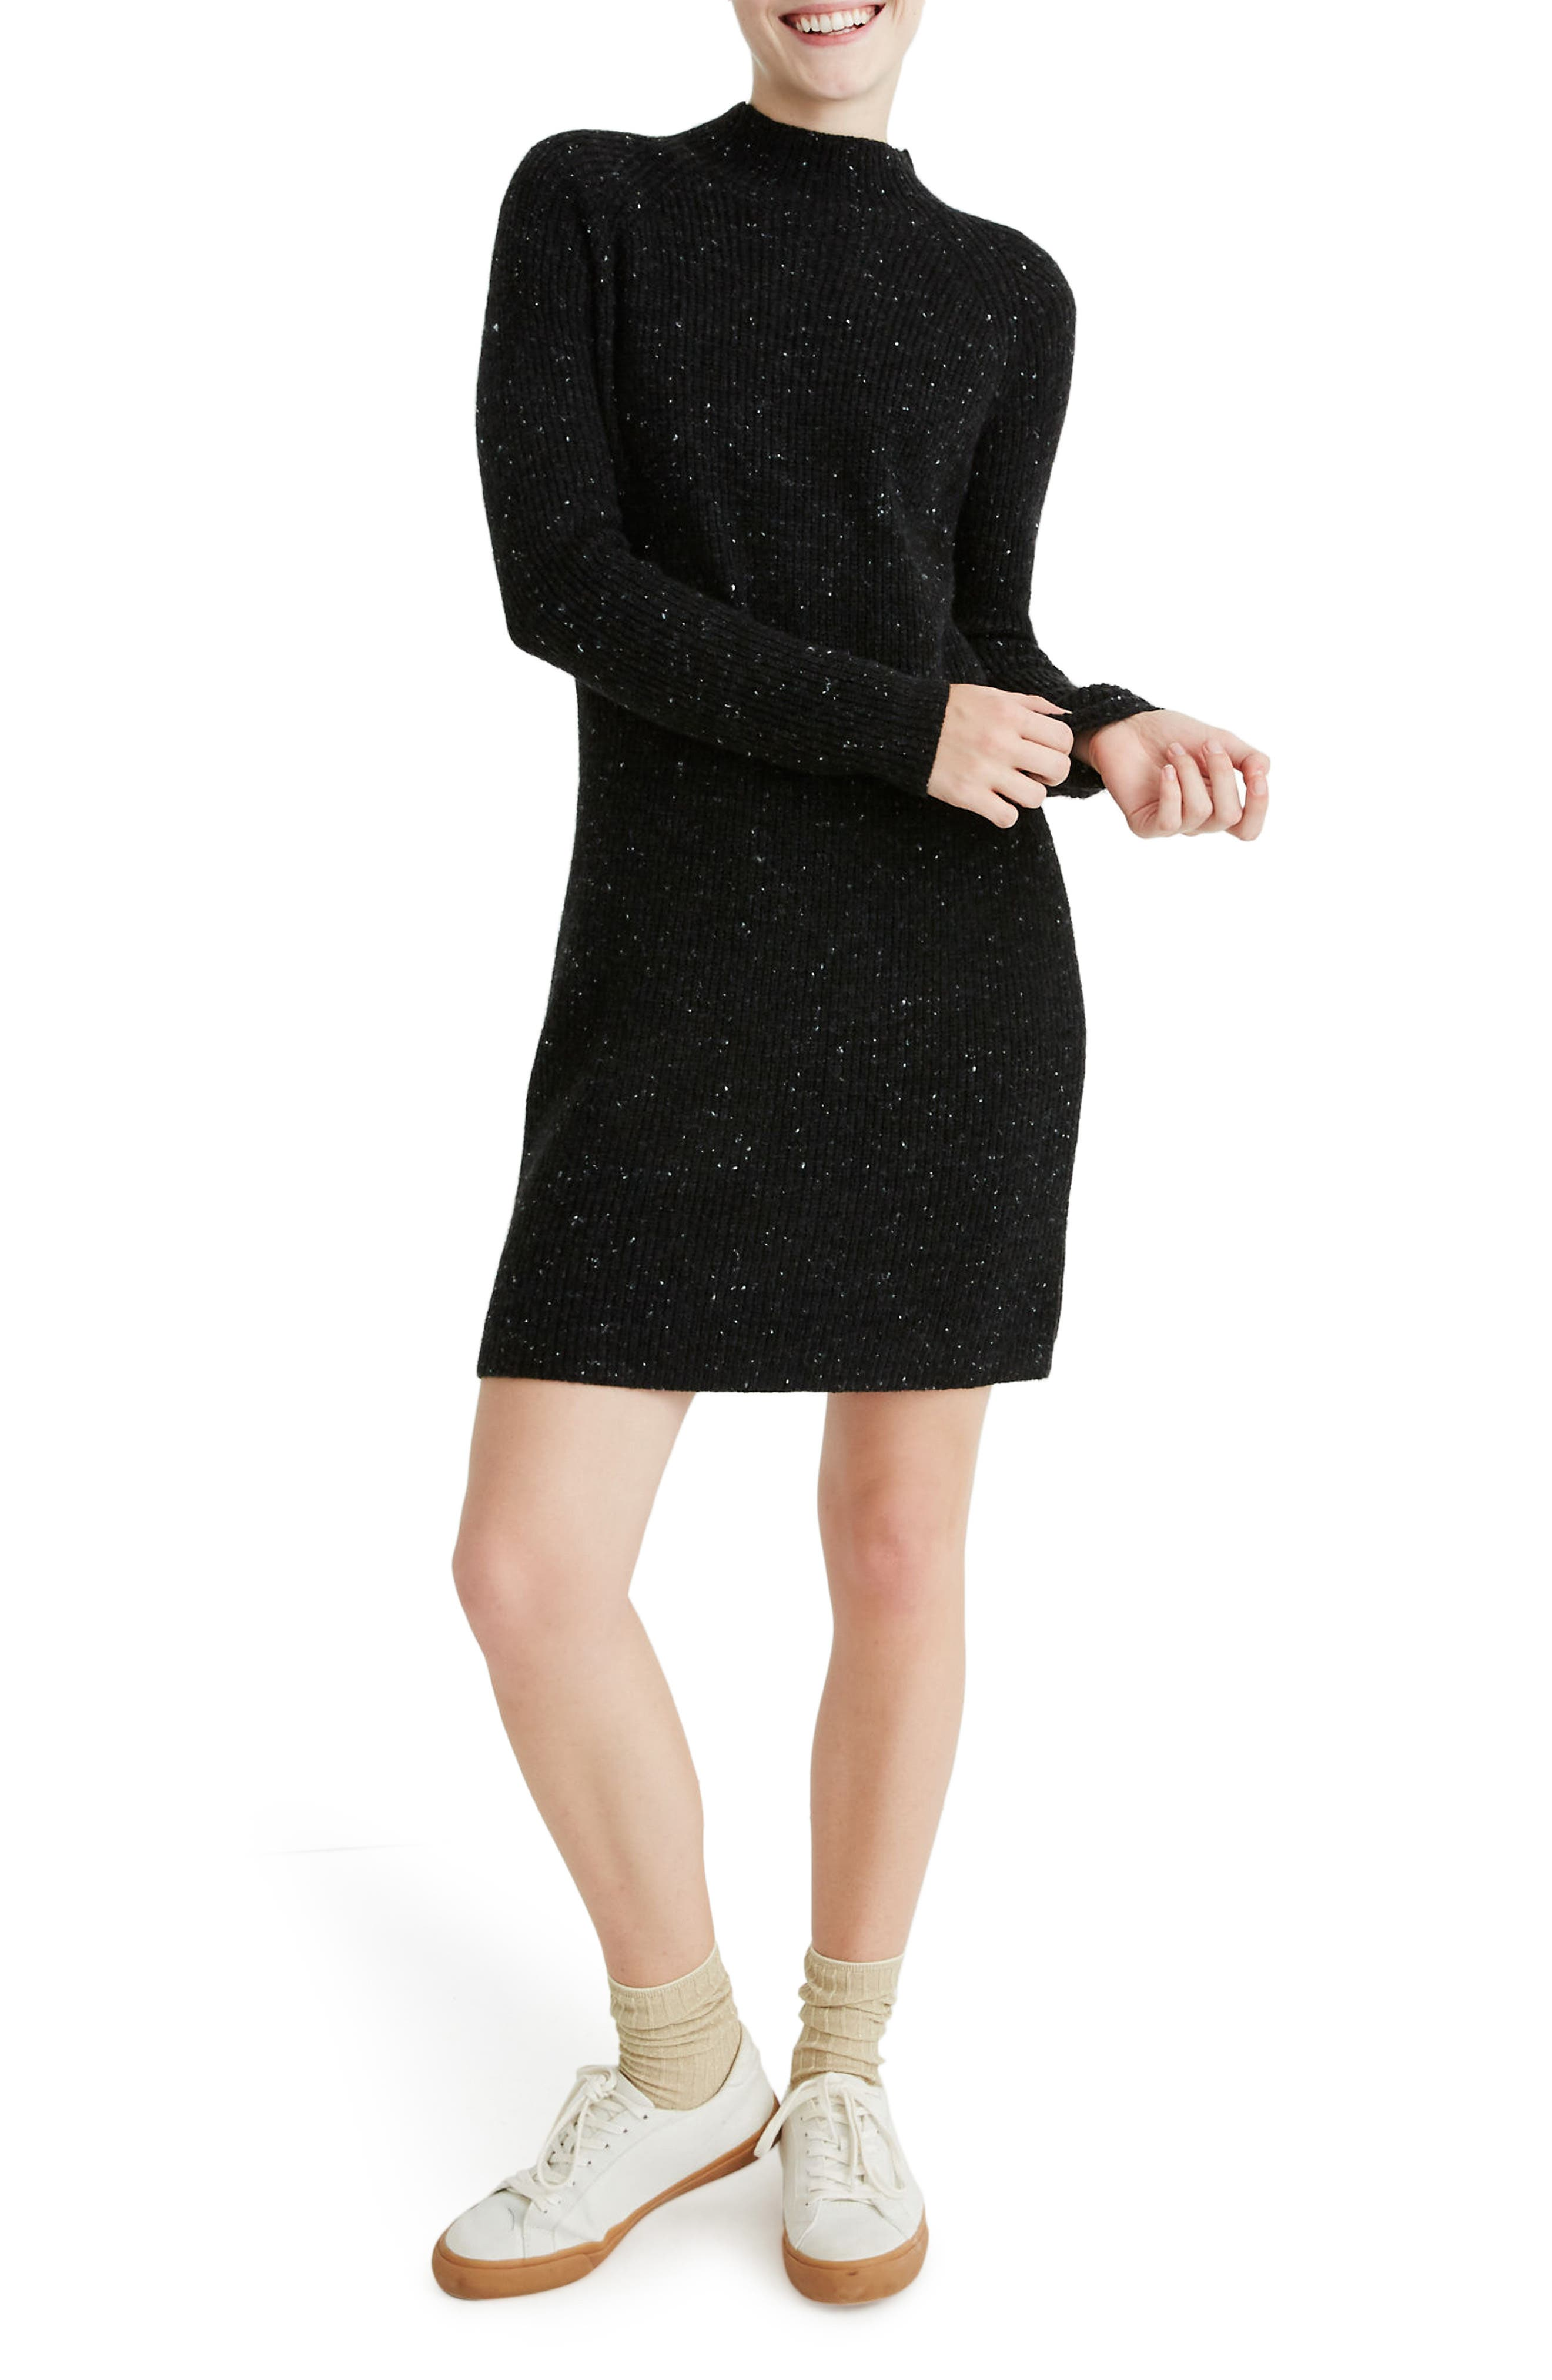 Madewell Donegal Rolled Mock Neck Sweater Dress